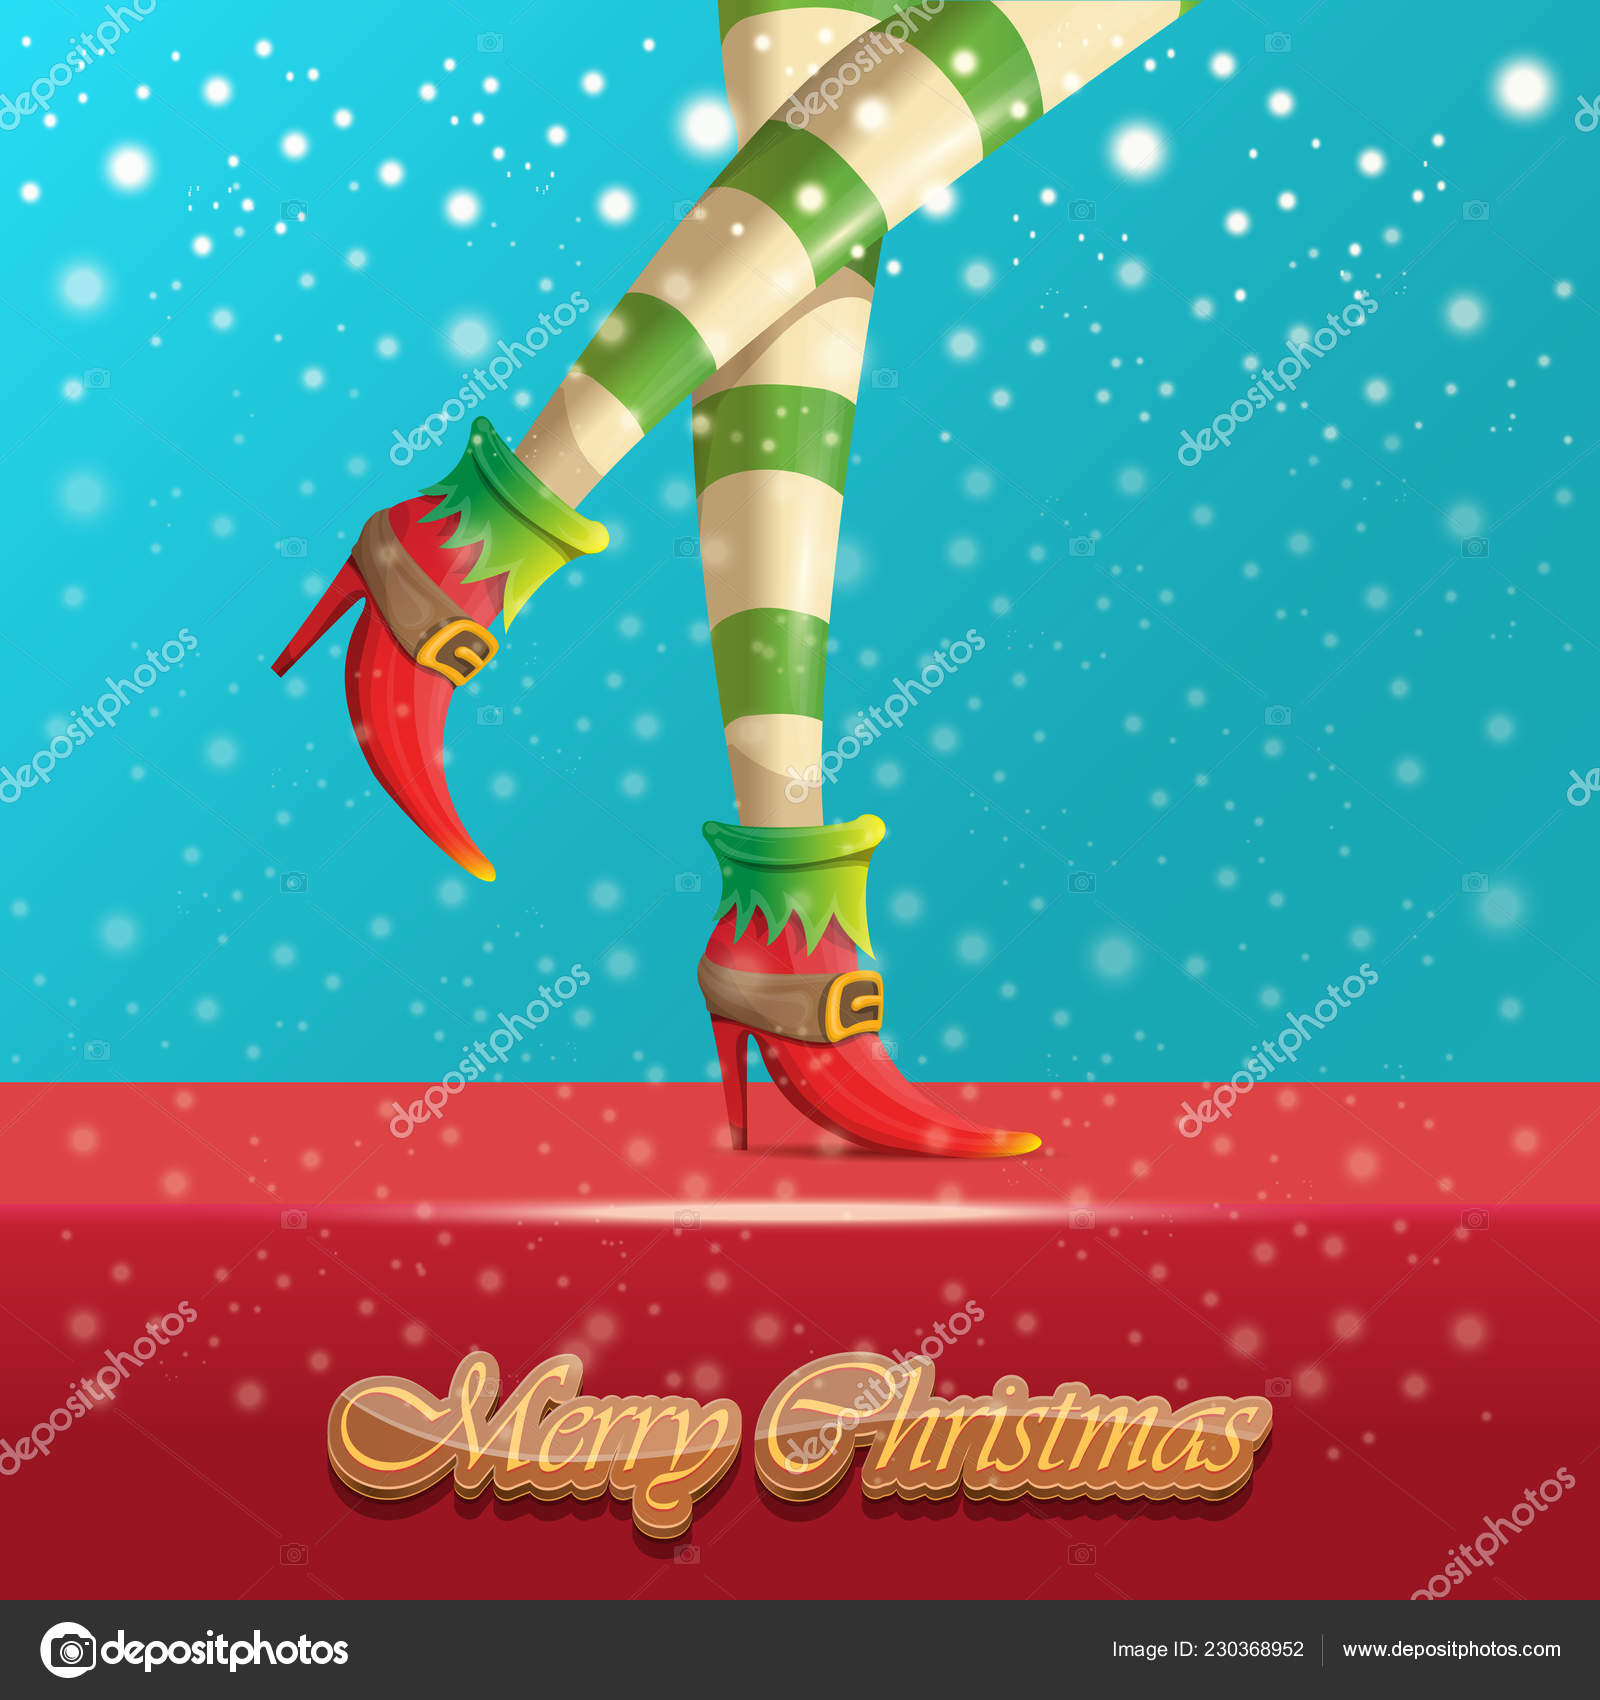 Vector merry christmas greeting card with cartoon elf hot girls legs, falling snow, lights